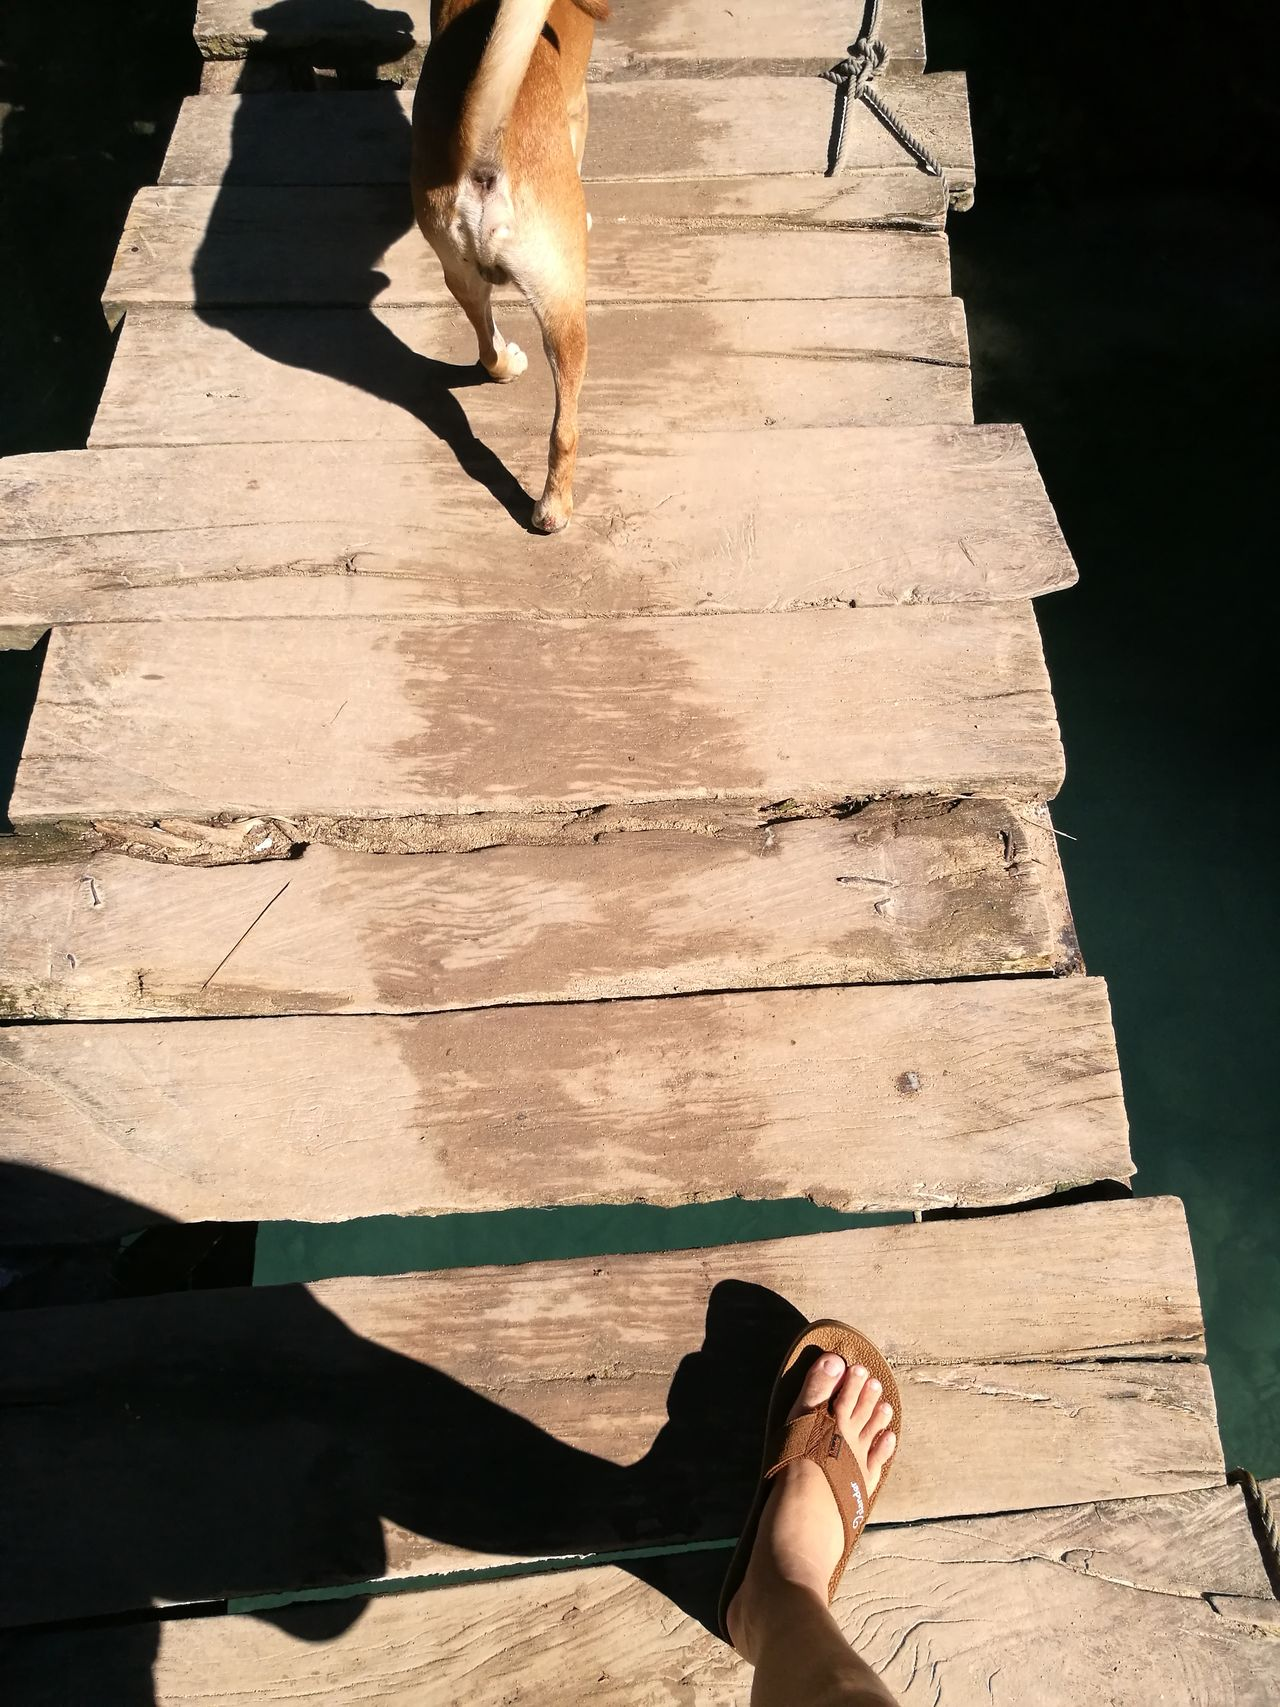 The Wooden Bridge it's when you cannot overtake the dog 😂 Partoftrail Sugbo Outdoors Cebufalls Philippines ❤️ Wanderfeet Queencityofthesouth Islander